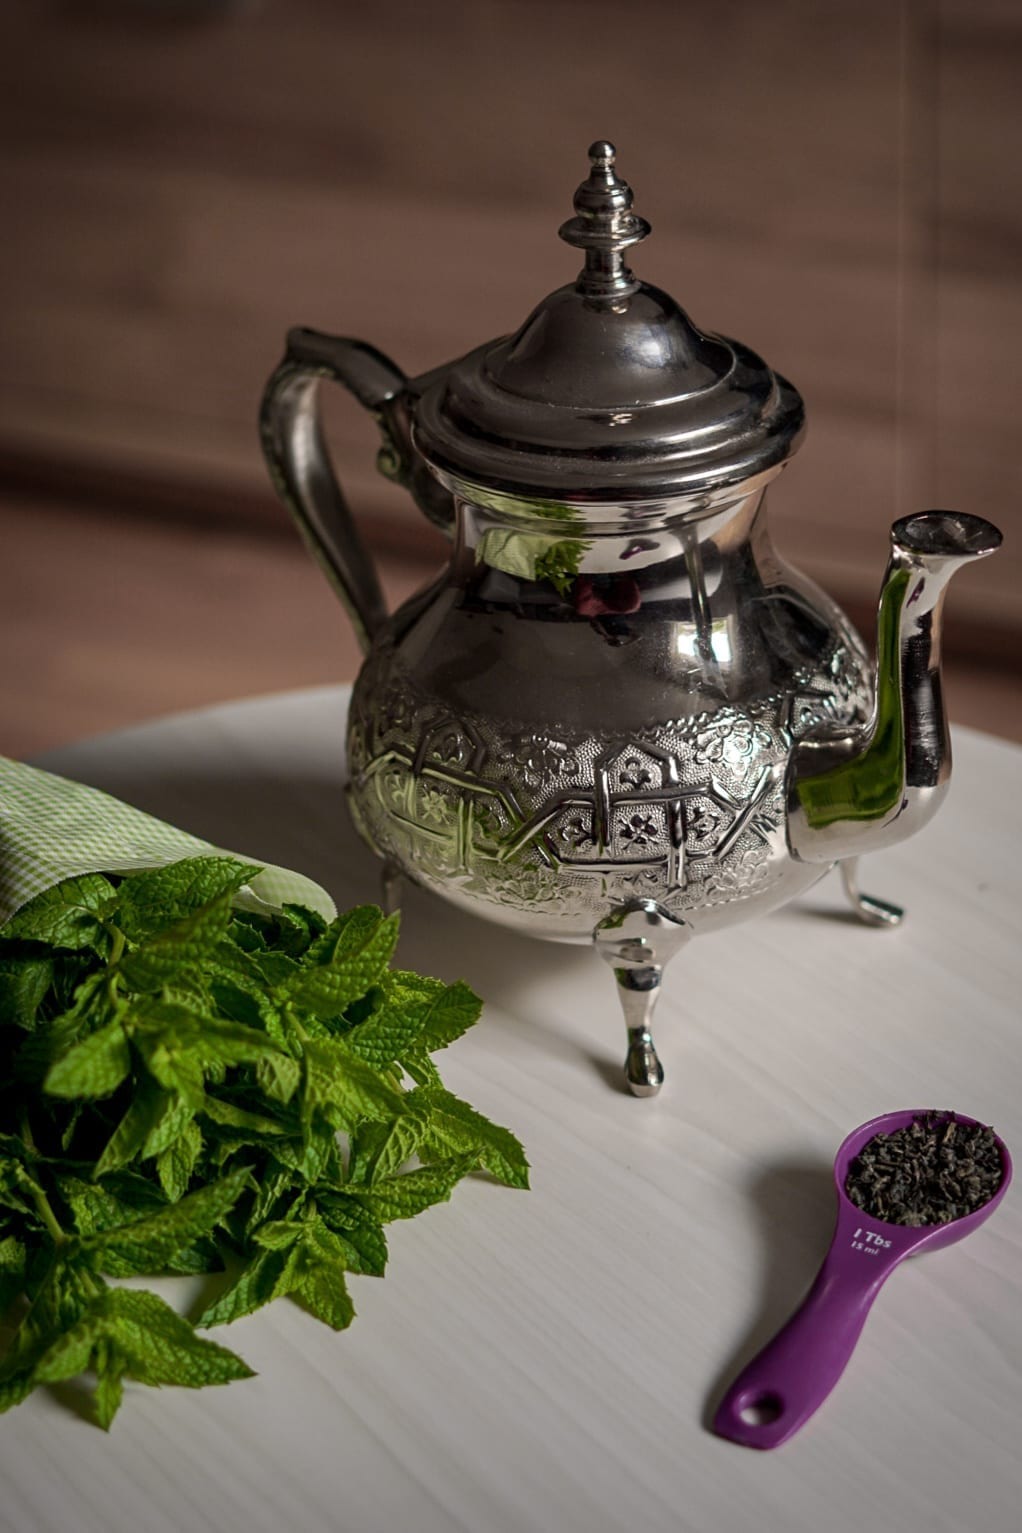 Moroccan teapot and Mint